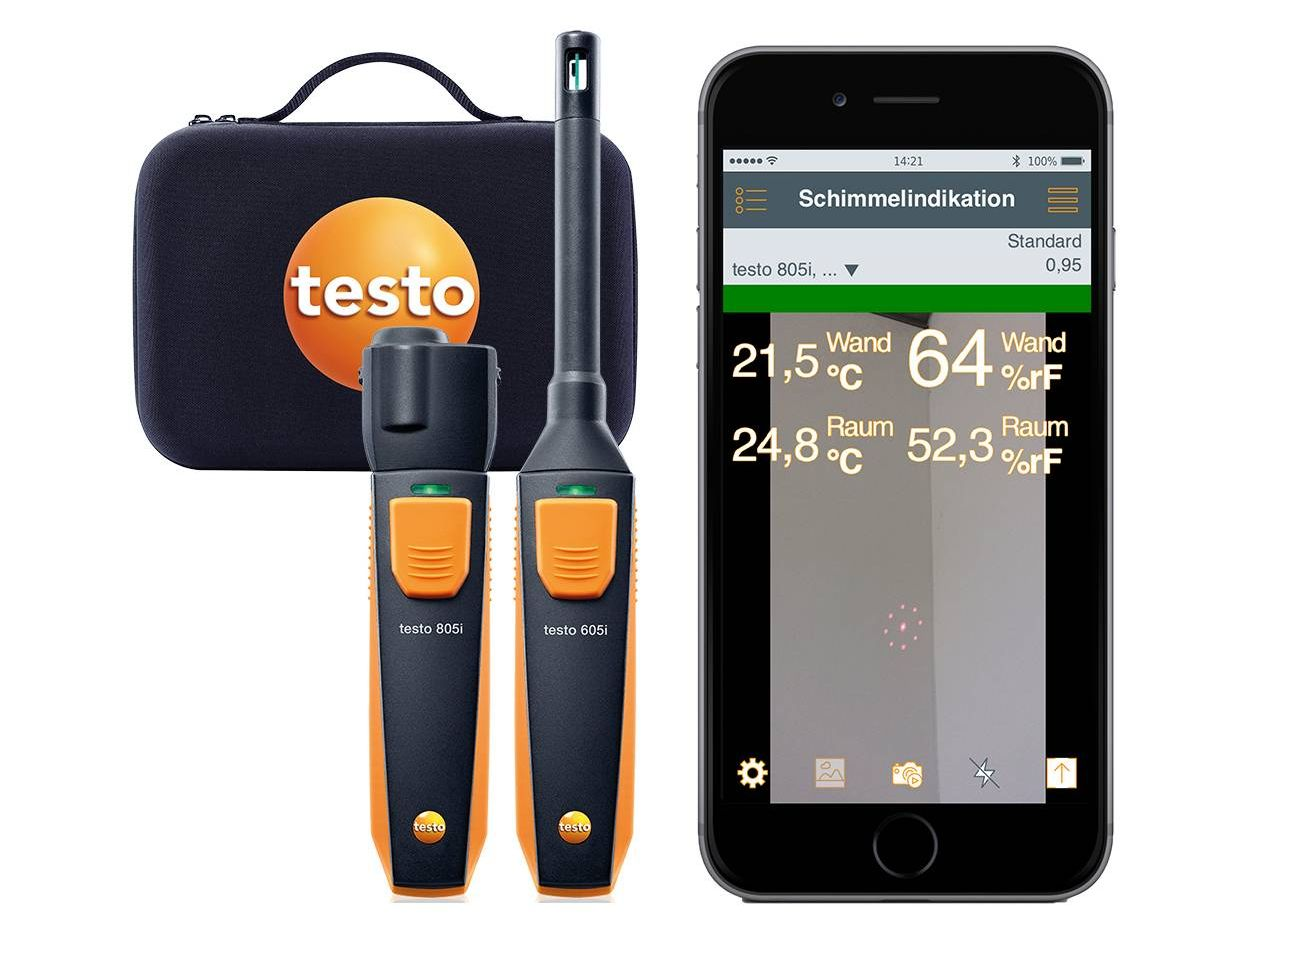 testo Smart Probes Anwendungs-Highlight Schimmeldetektion